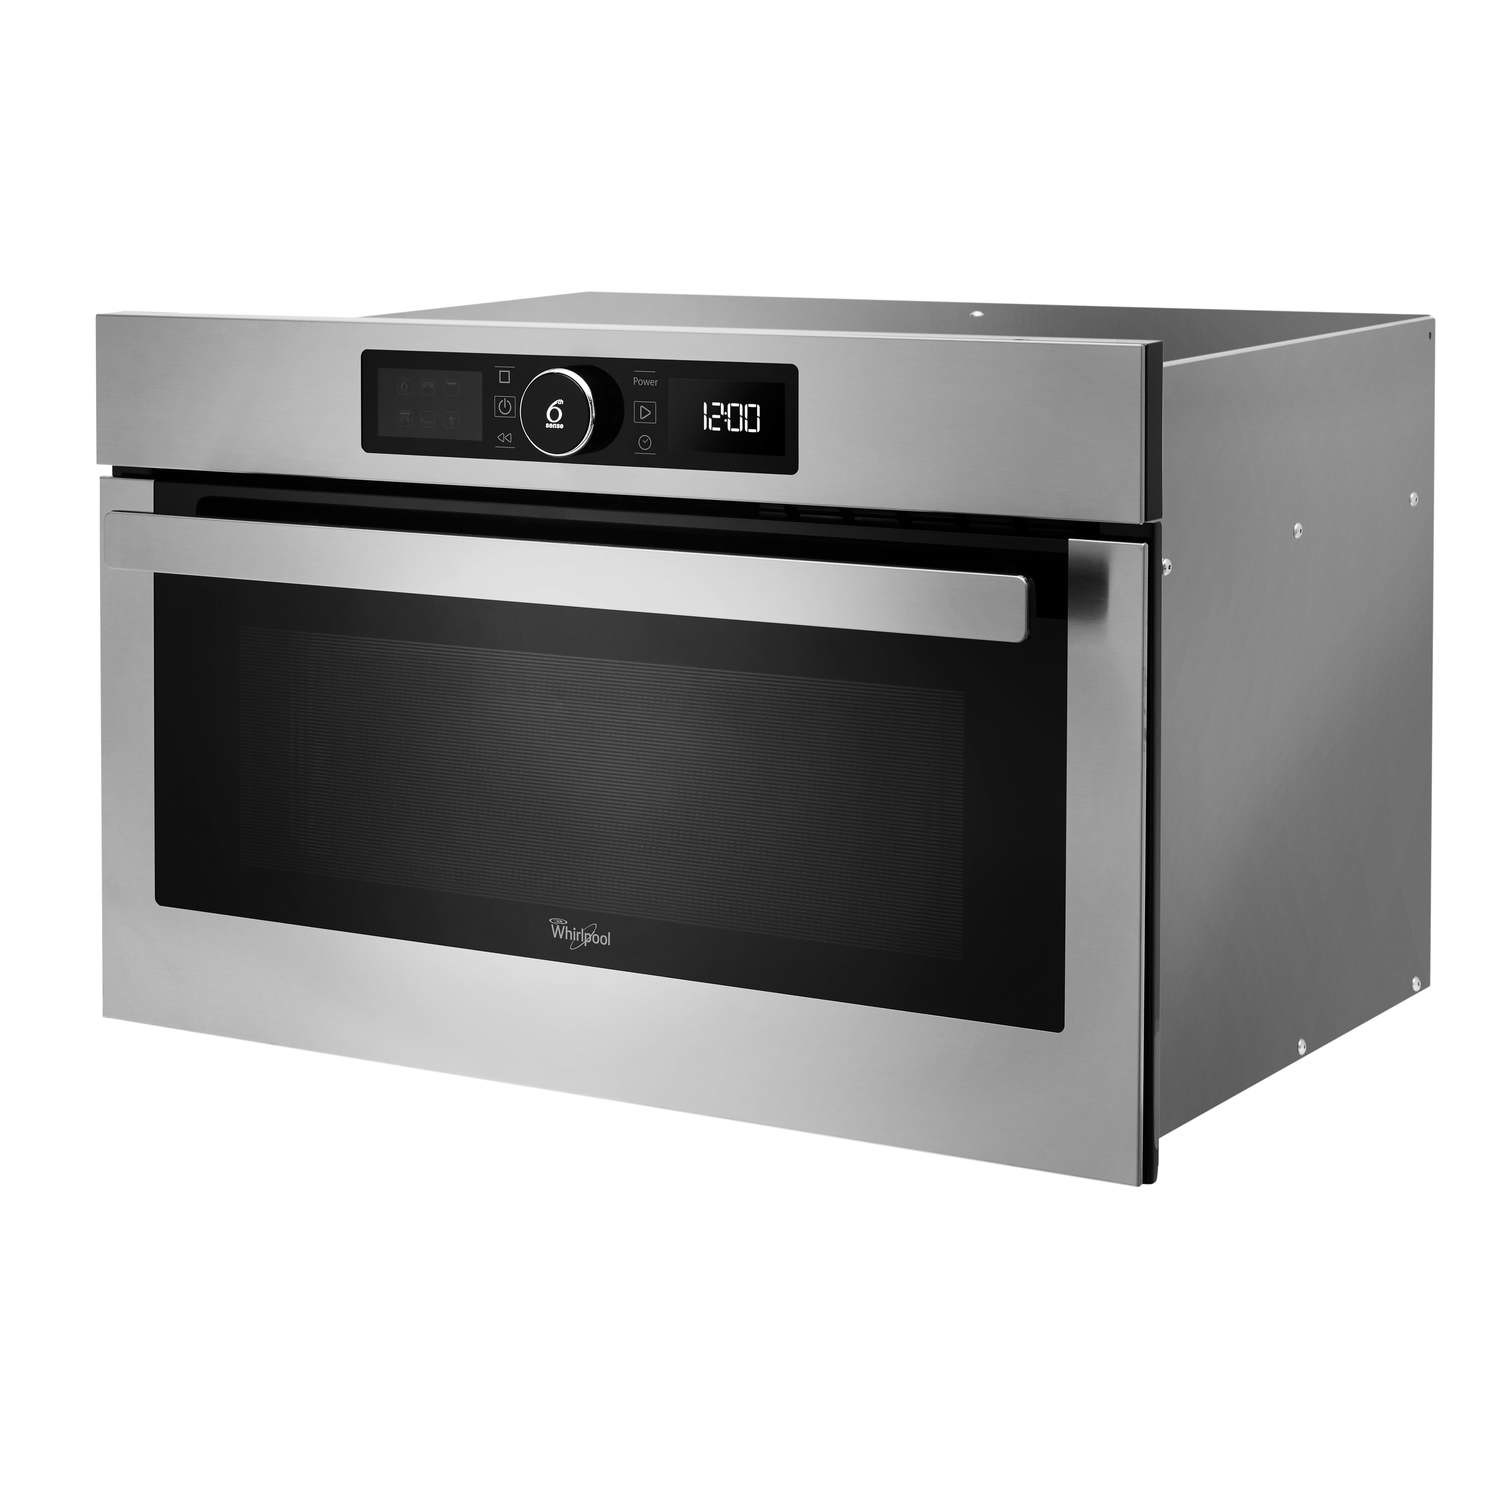 whirlpool amw730ix absolute 31 litre built in microwave and grill stainless steel